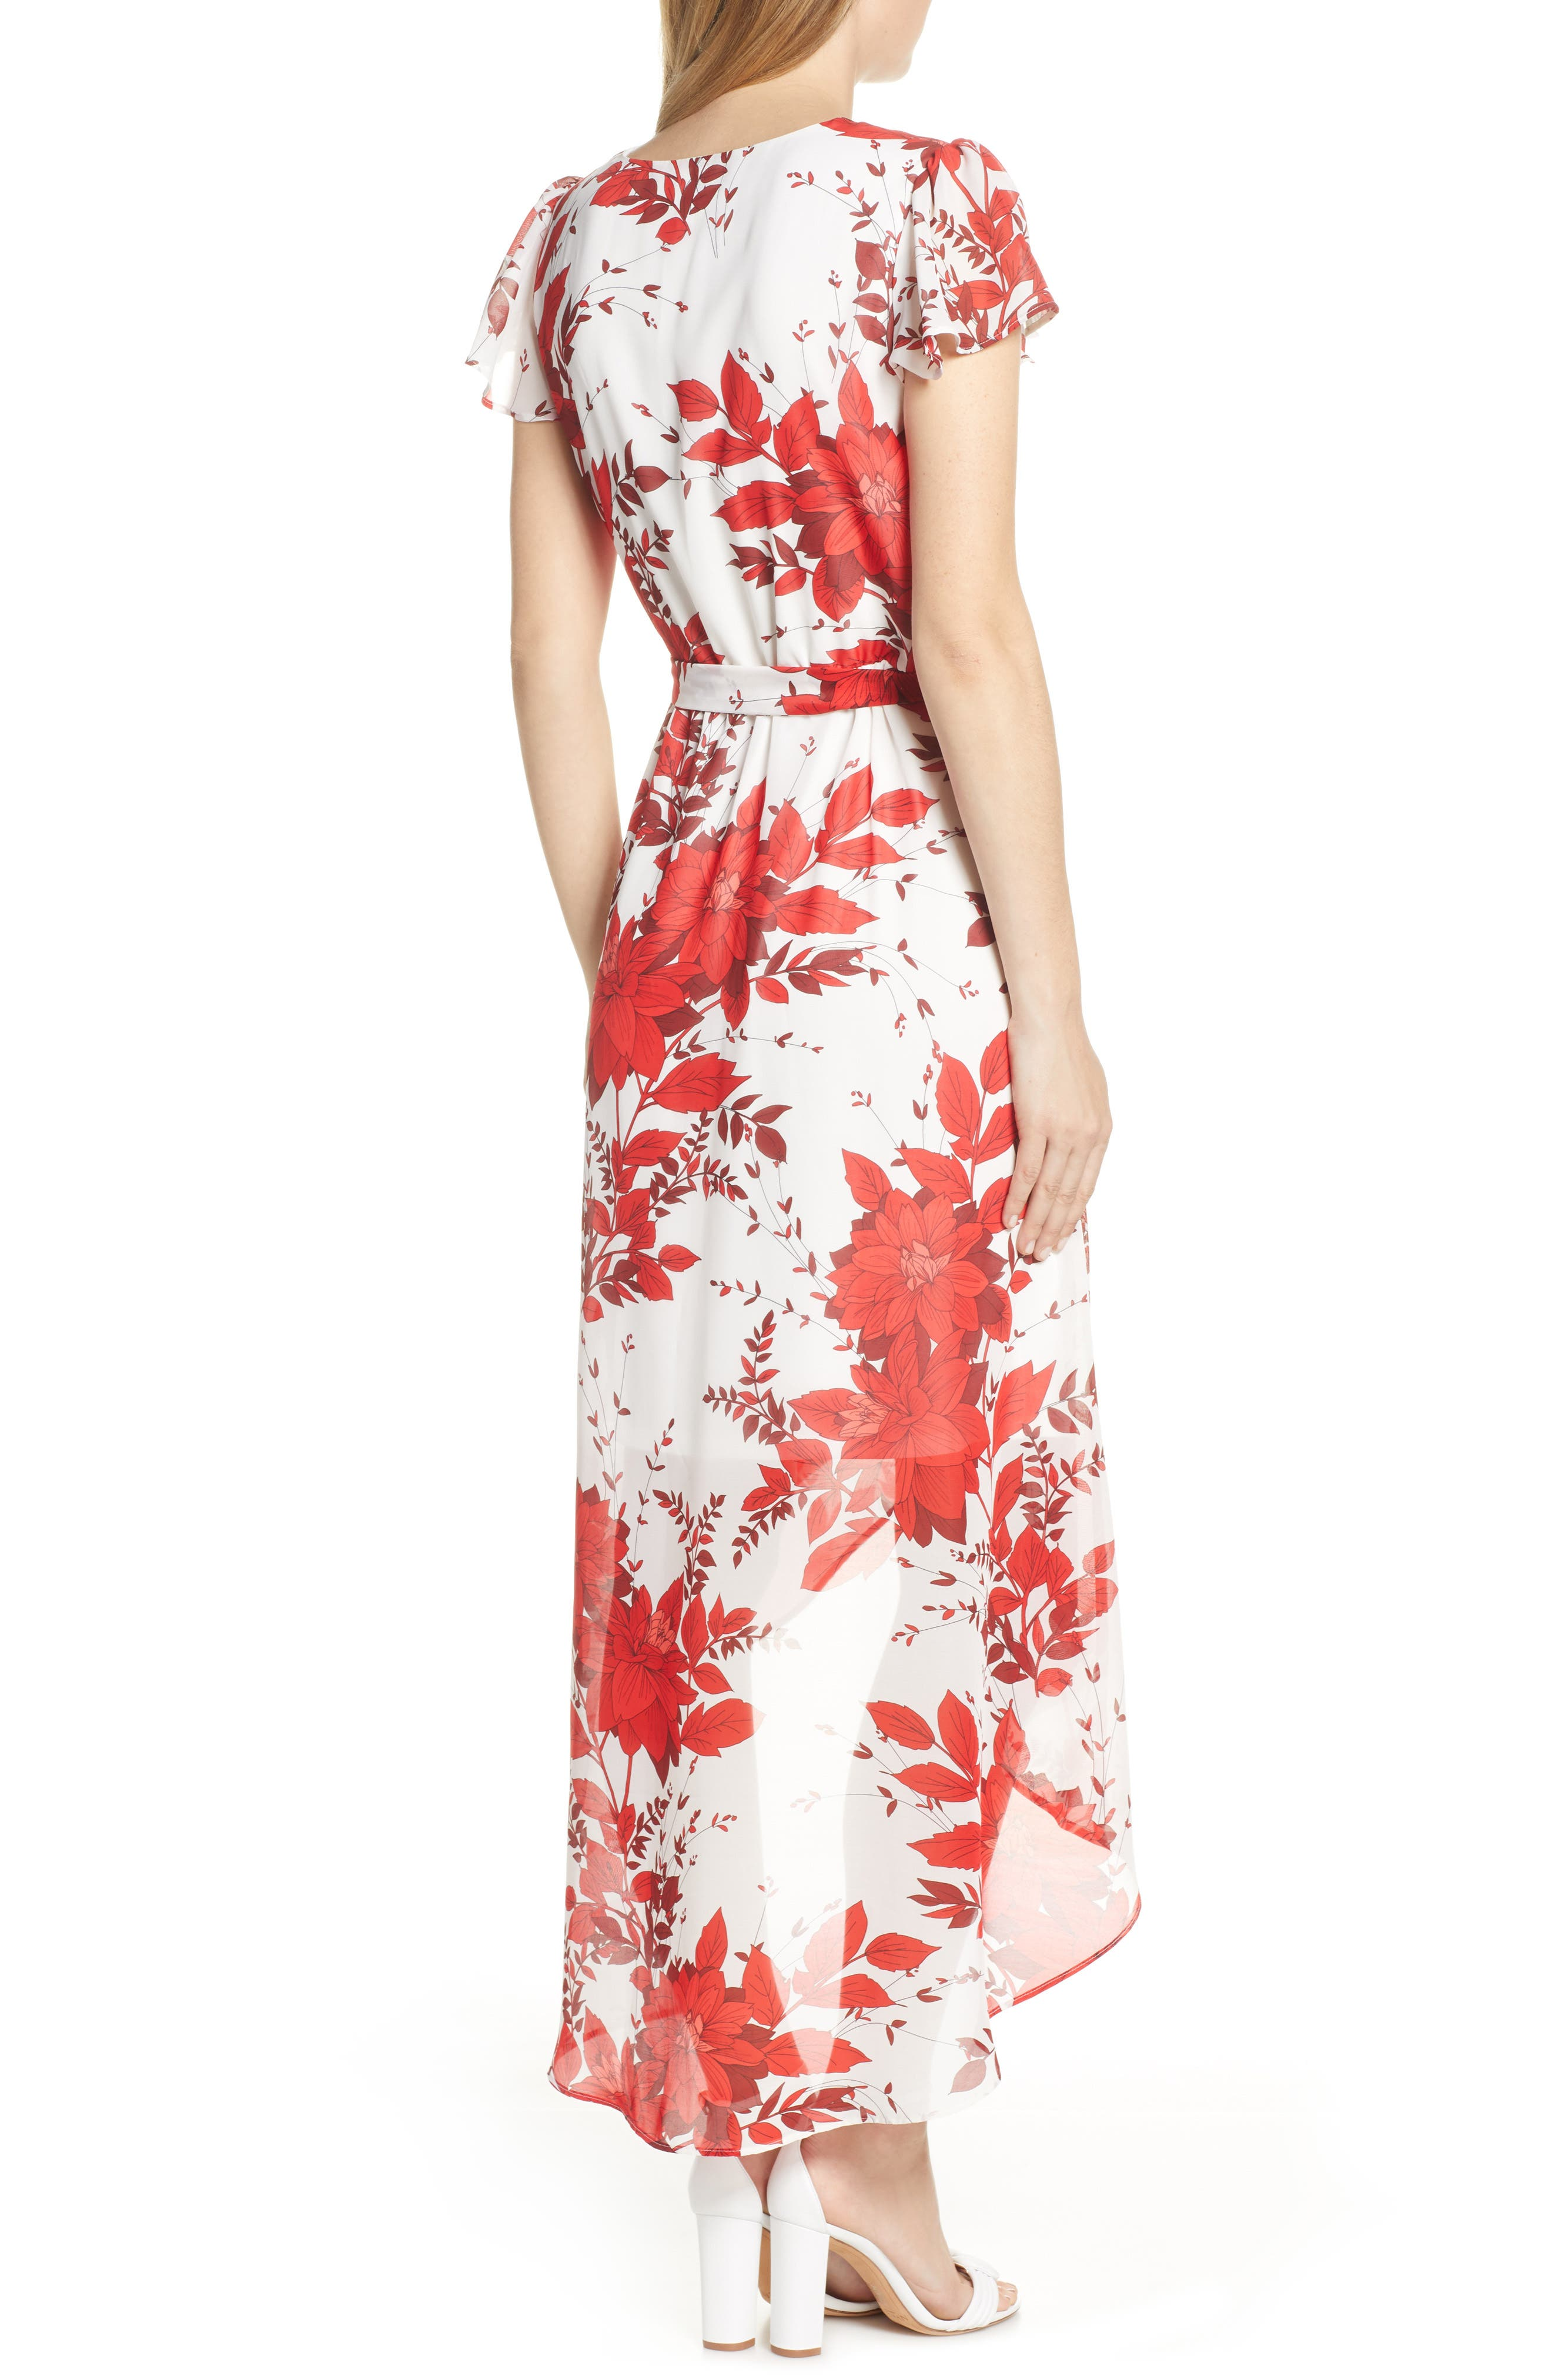 JULIA JORDAN, High/Low Floral Wrap Dress, Alternate thumbnail 2, color, IVORY/ RED